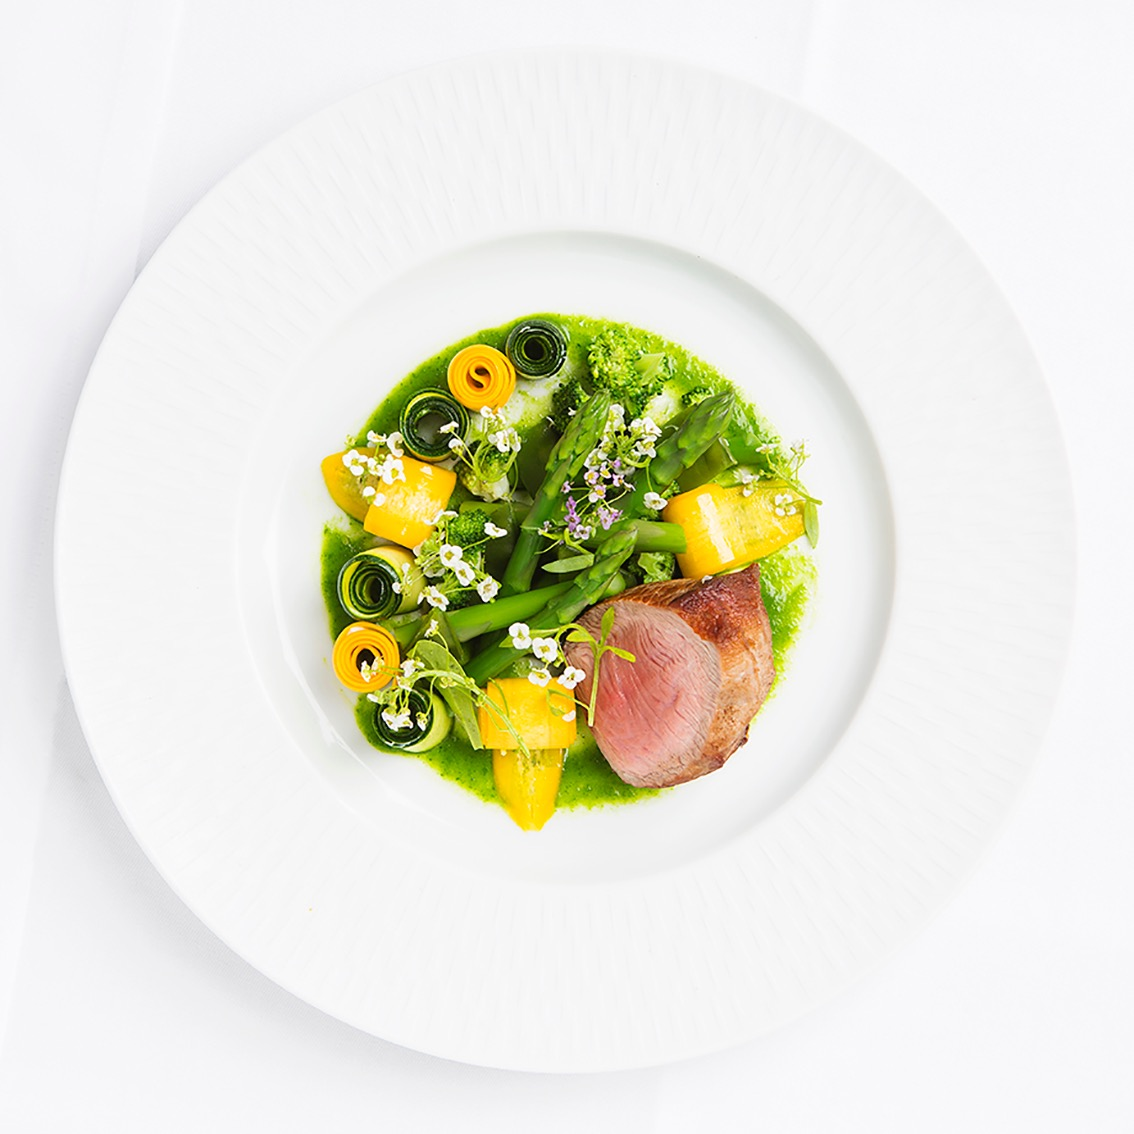 creation culinaire Alan Geeam, epoque restaurant AG Saint Germain, Veau asperges et courgette bi-color, ©alban Couturier